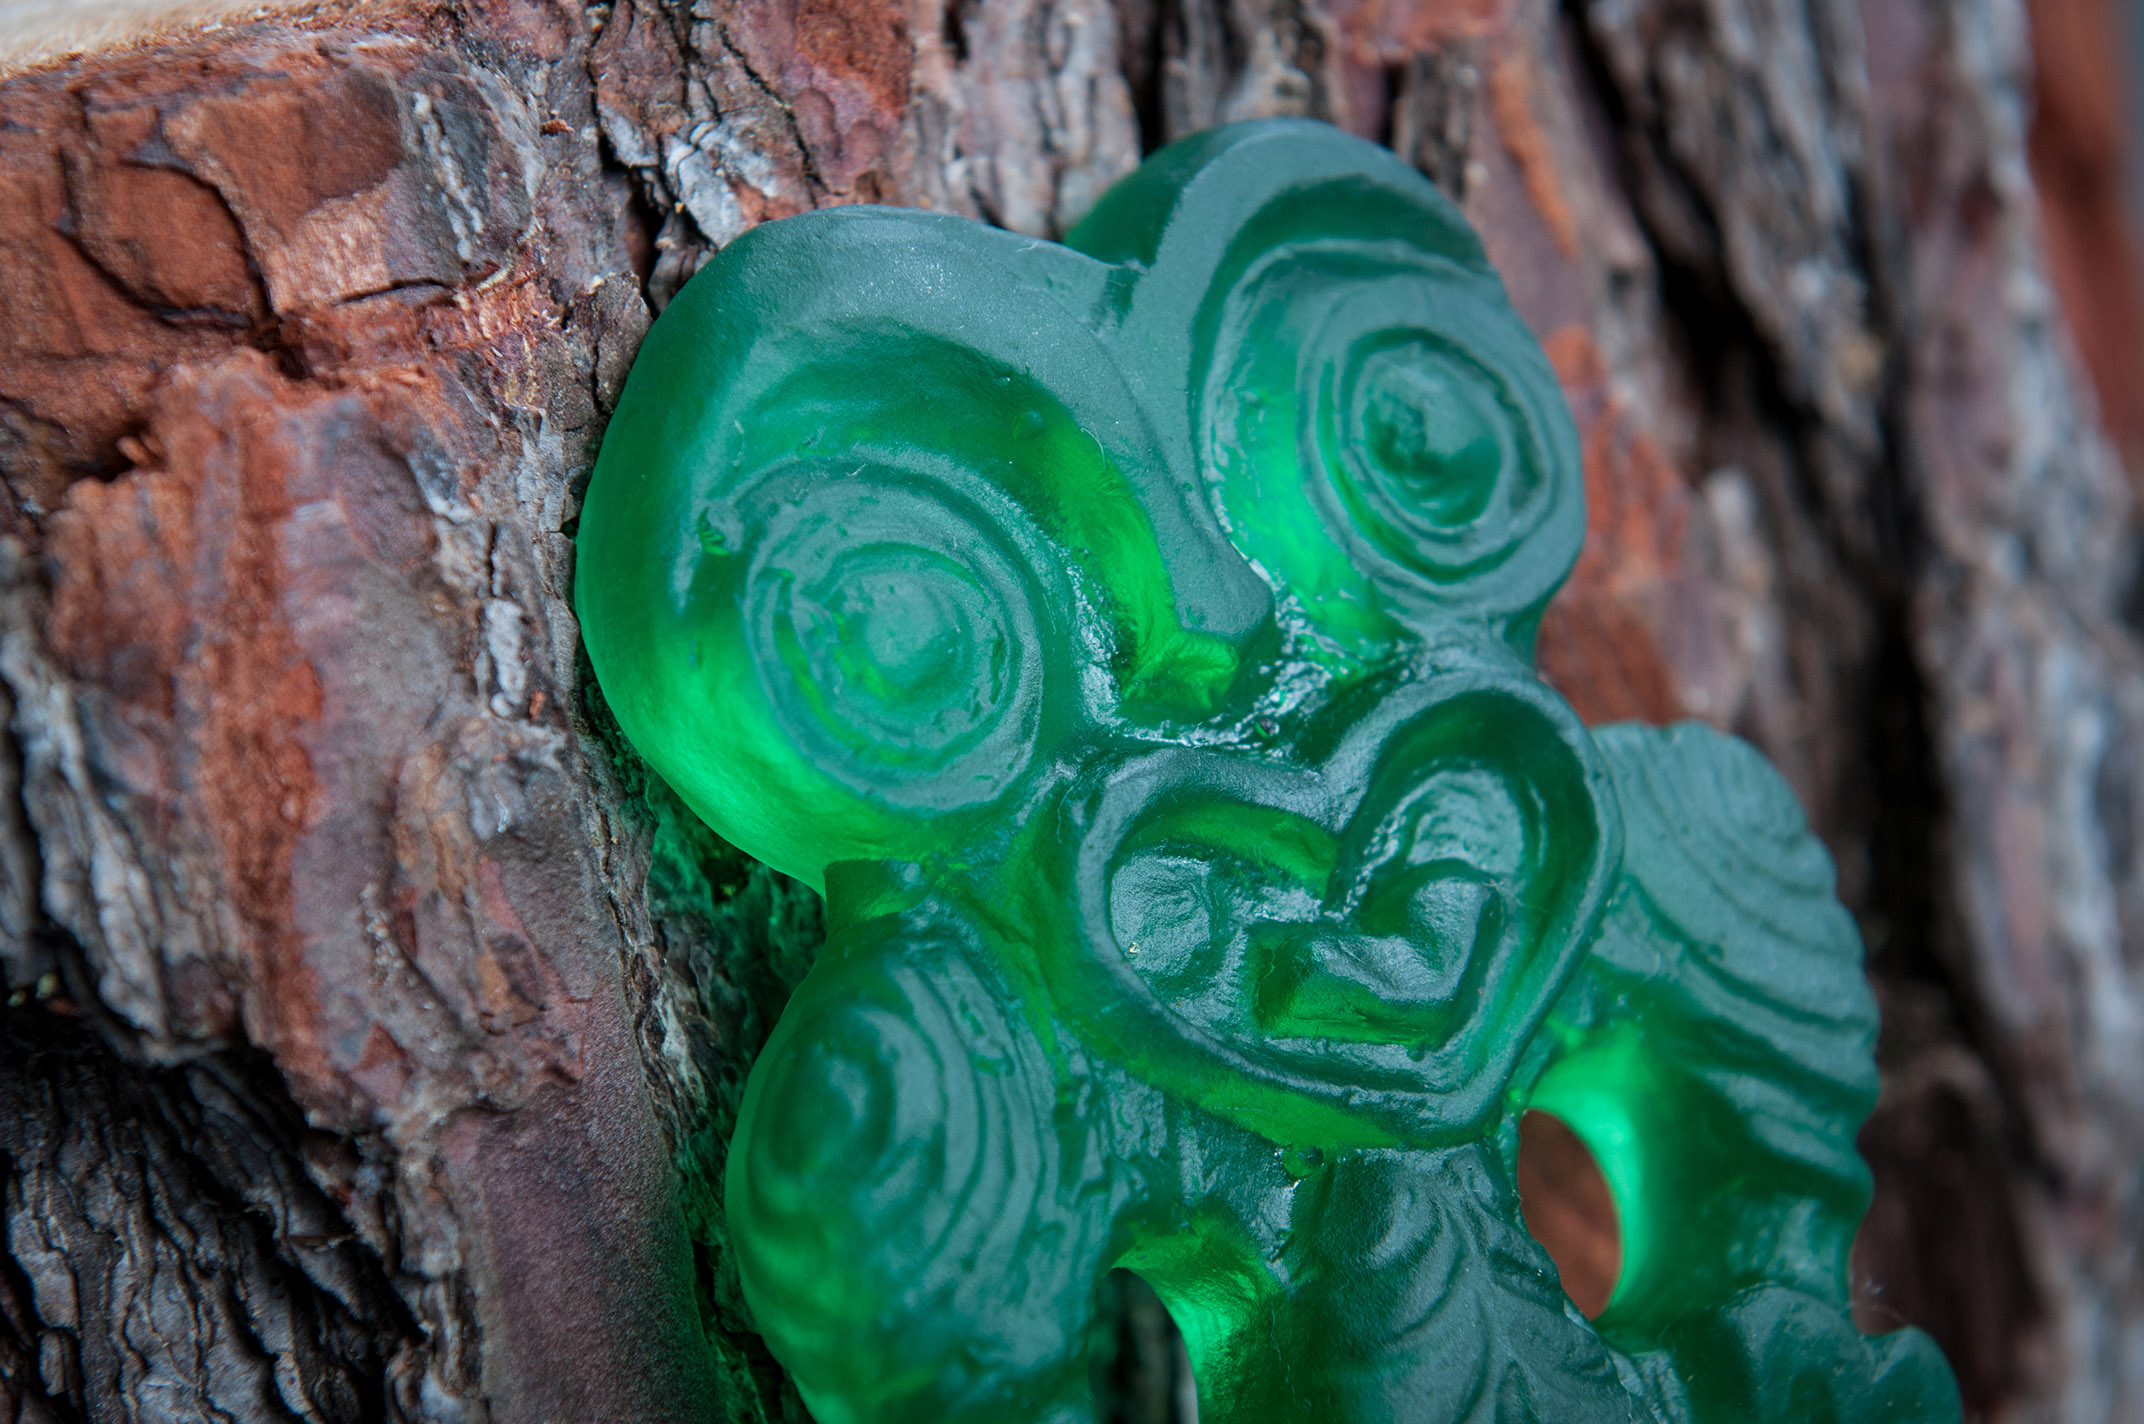 Green Tiki Product photography Anais Chaine professional Auckland photographer for Auckland museum www.anaischaine.com